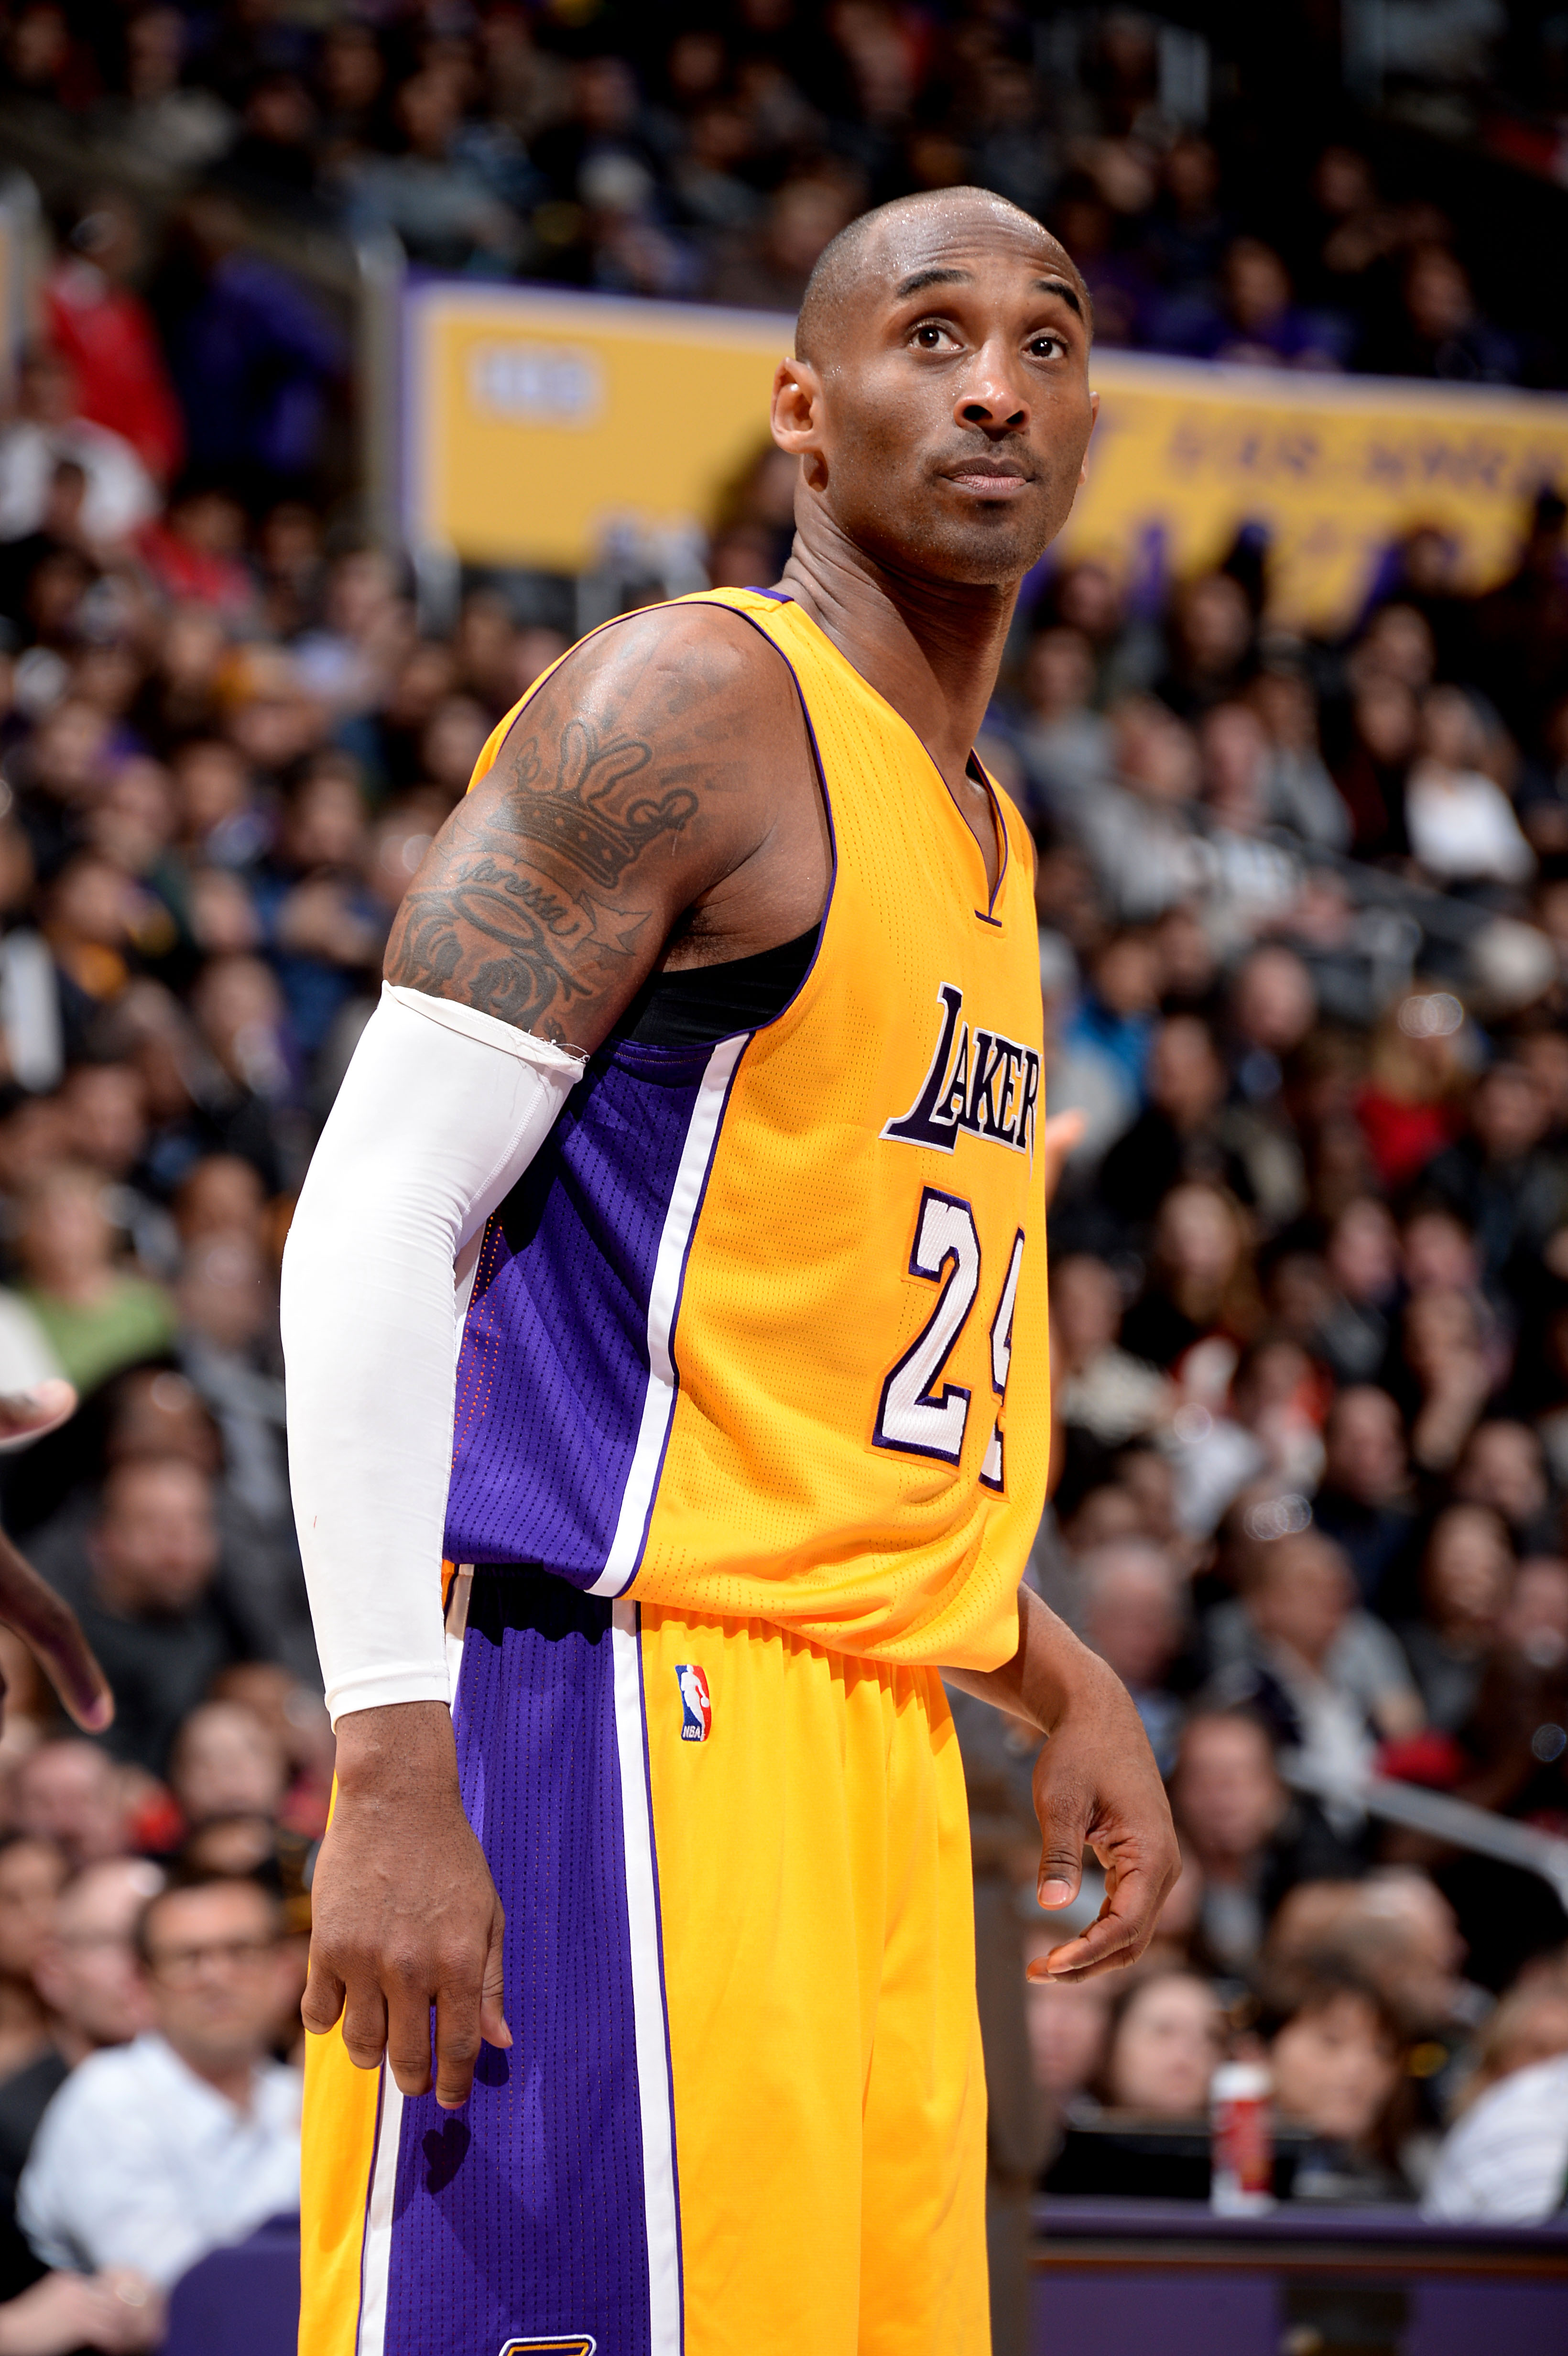 LOS ANGELES, CA - DECEMBER 17: Kobe Bryant #24 of the Los Angeles Lakers looks on during the game against the Houston Rockets on December 17, 2015 at STAPLES Center in Los Angeles, California. (Photo by Andrew D. Bernstein/NBAE via Getty Images)